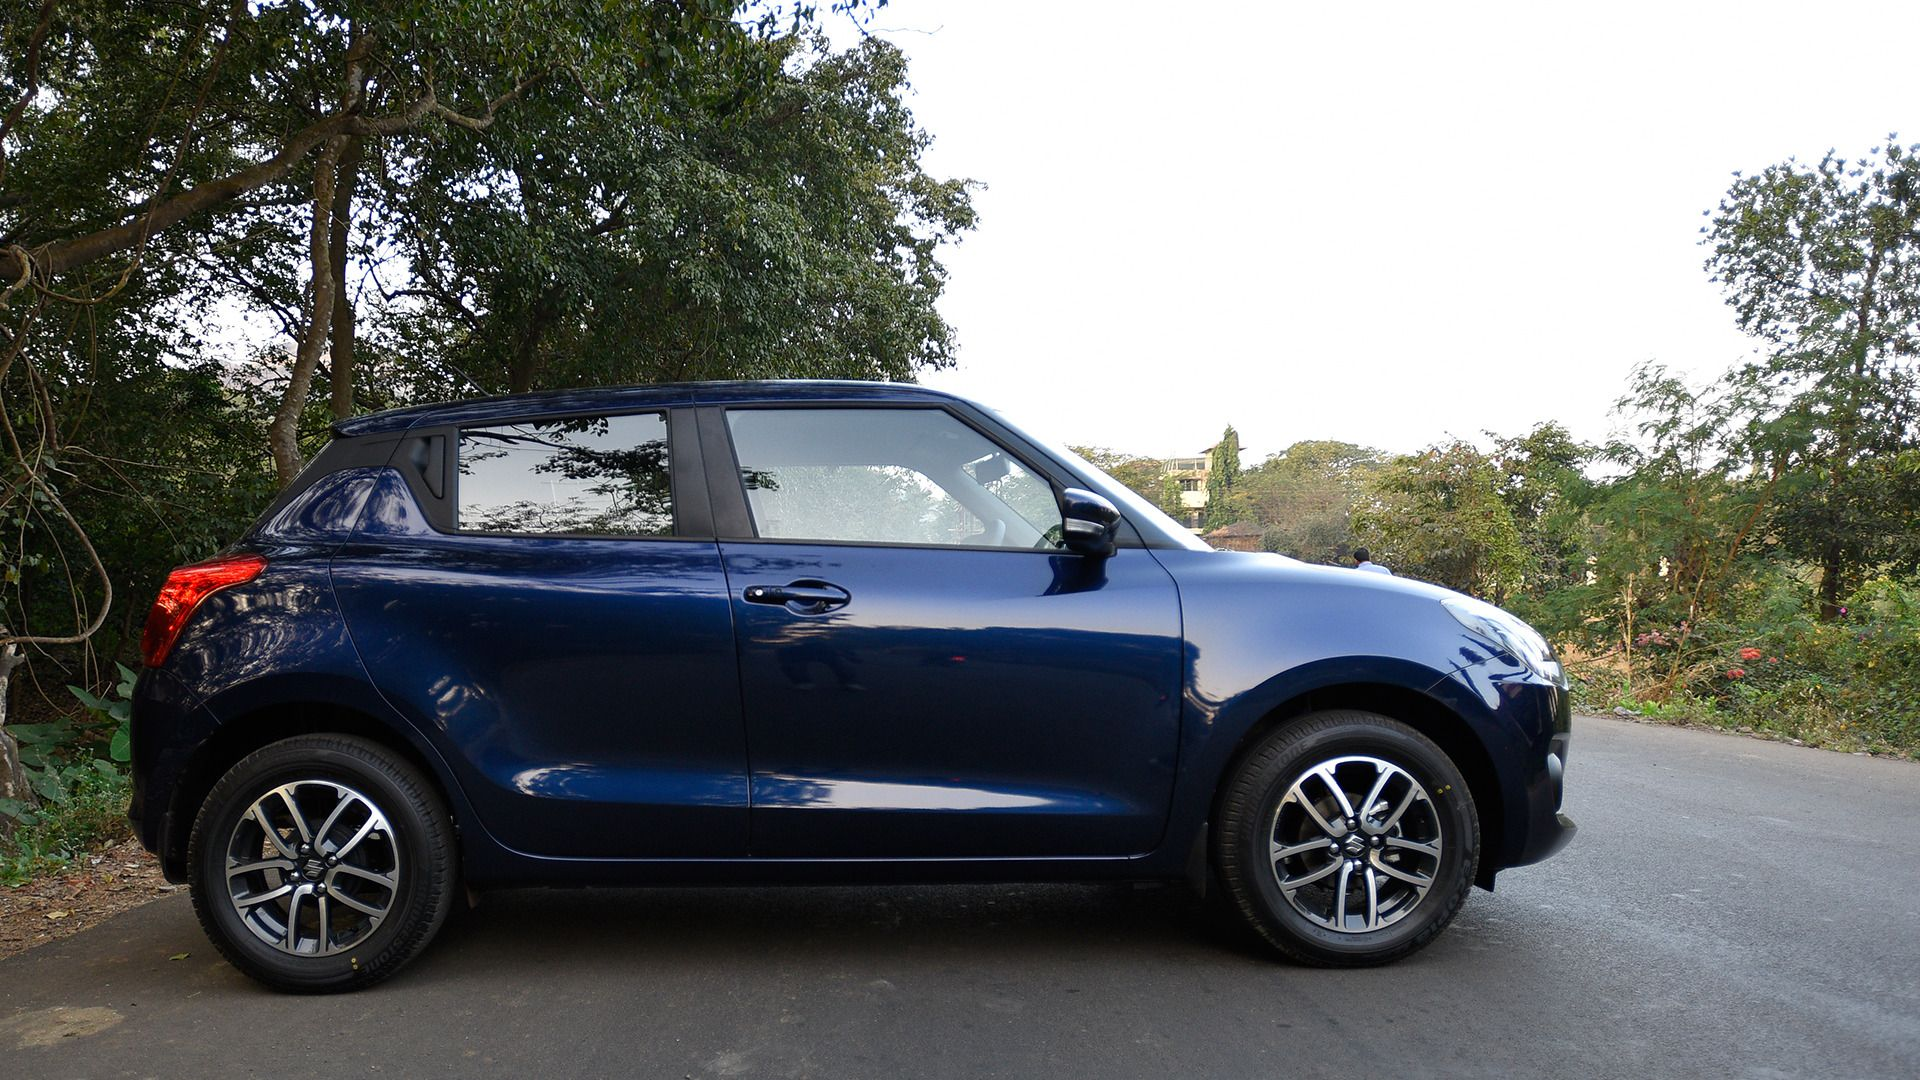 2019 Swift Car Price And Images Check More At Http Www New Cars Club 2018 02 28 2019 Swift Car Price And Images